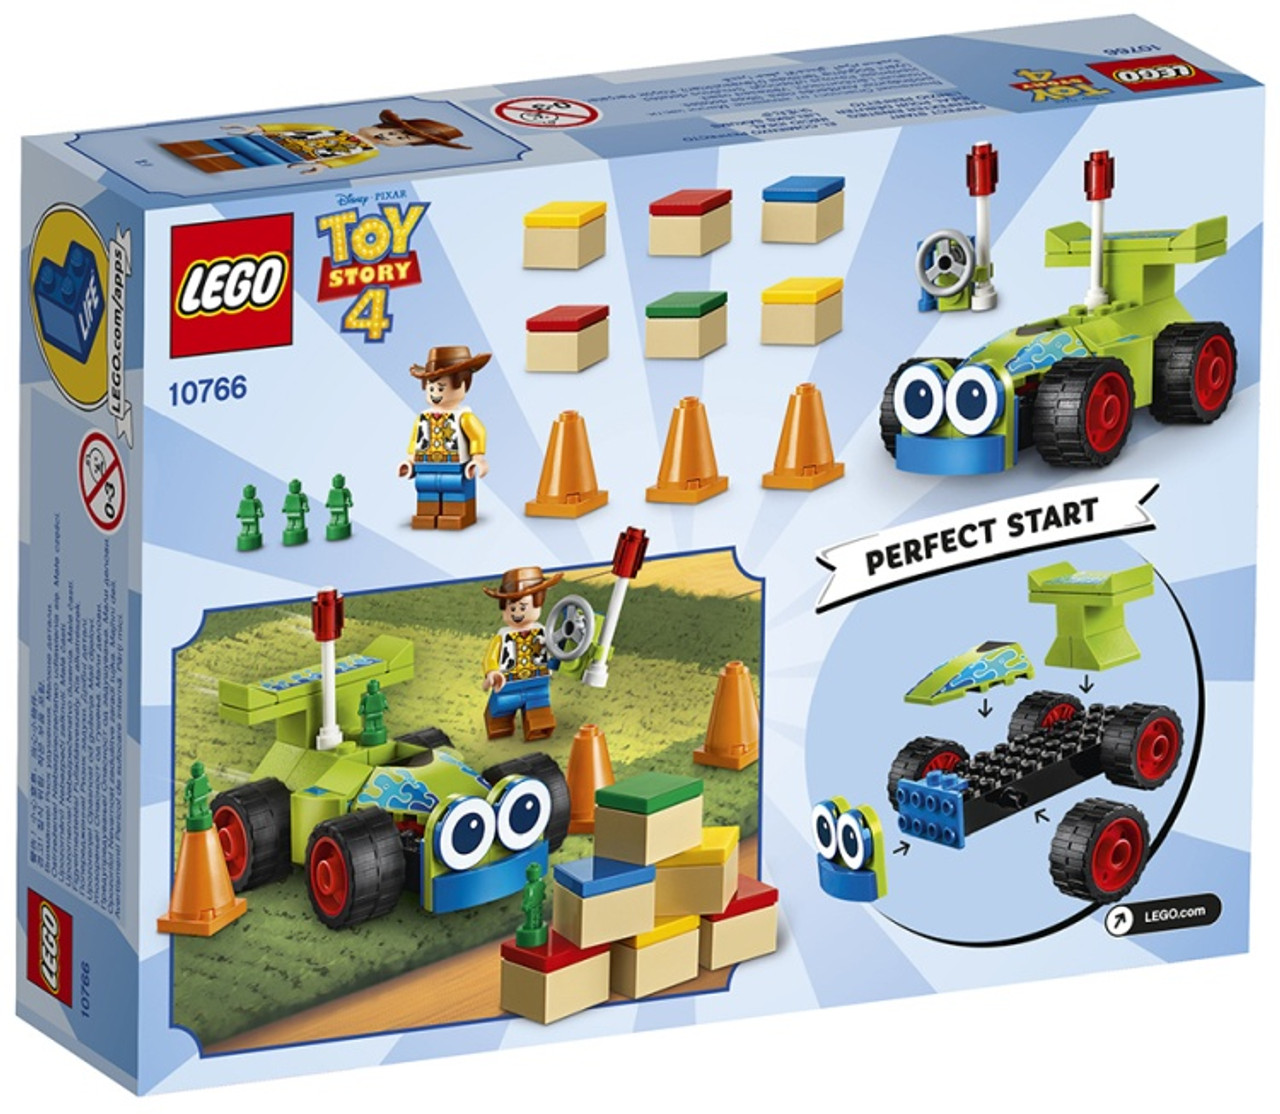 Lego Toy Story 4 Woody Rc 10766